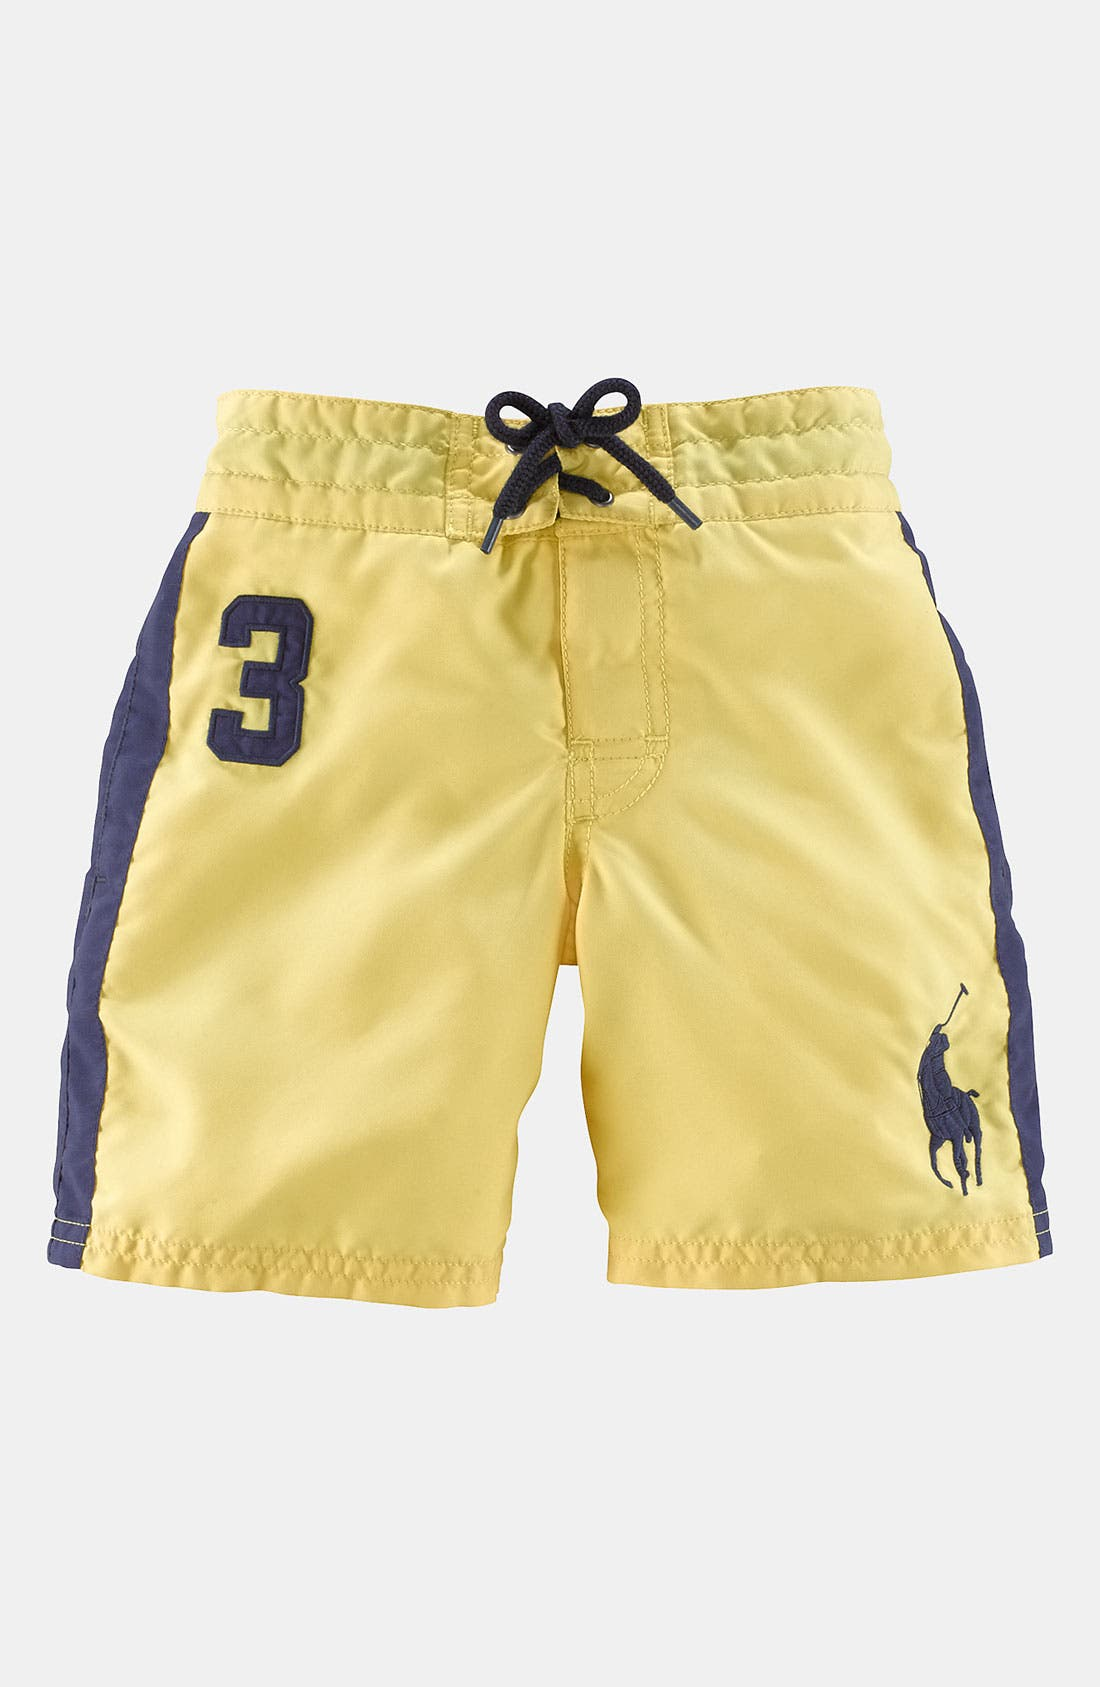 Alternate Image 1 Selected - Ralph Lauren Woven Cotton Swim Trunks (Toddler)